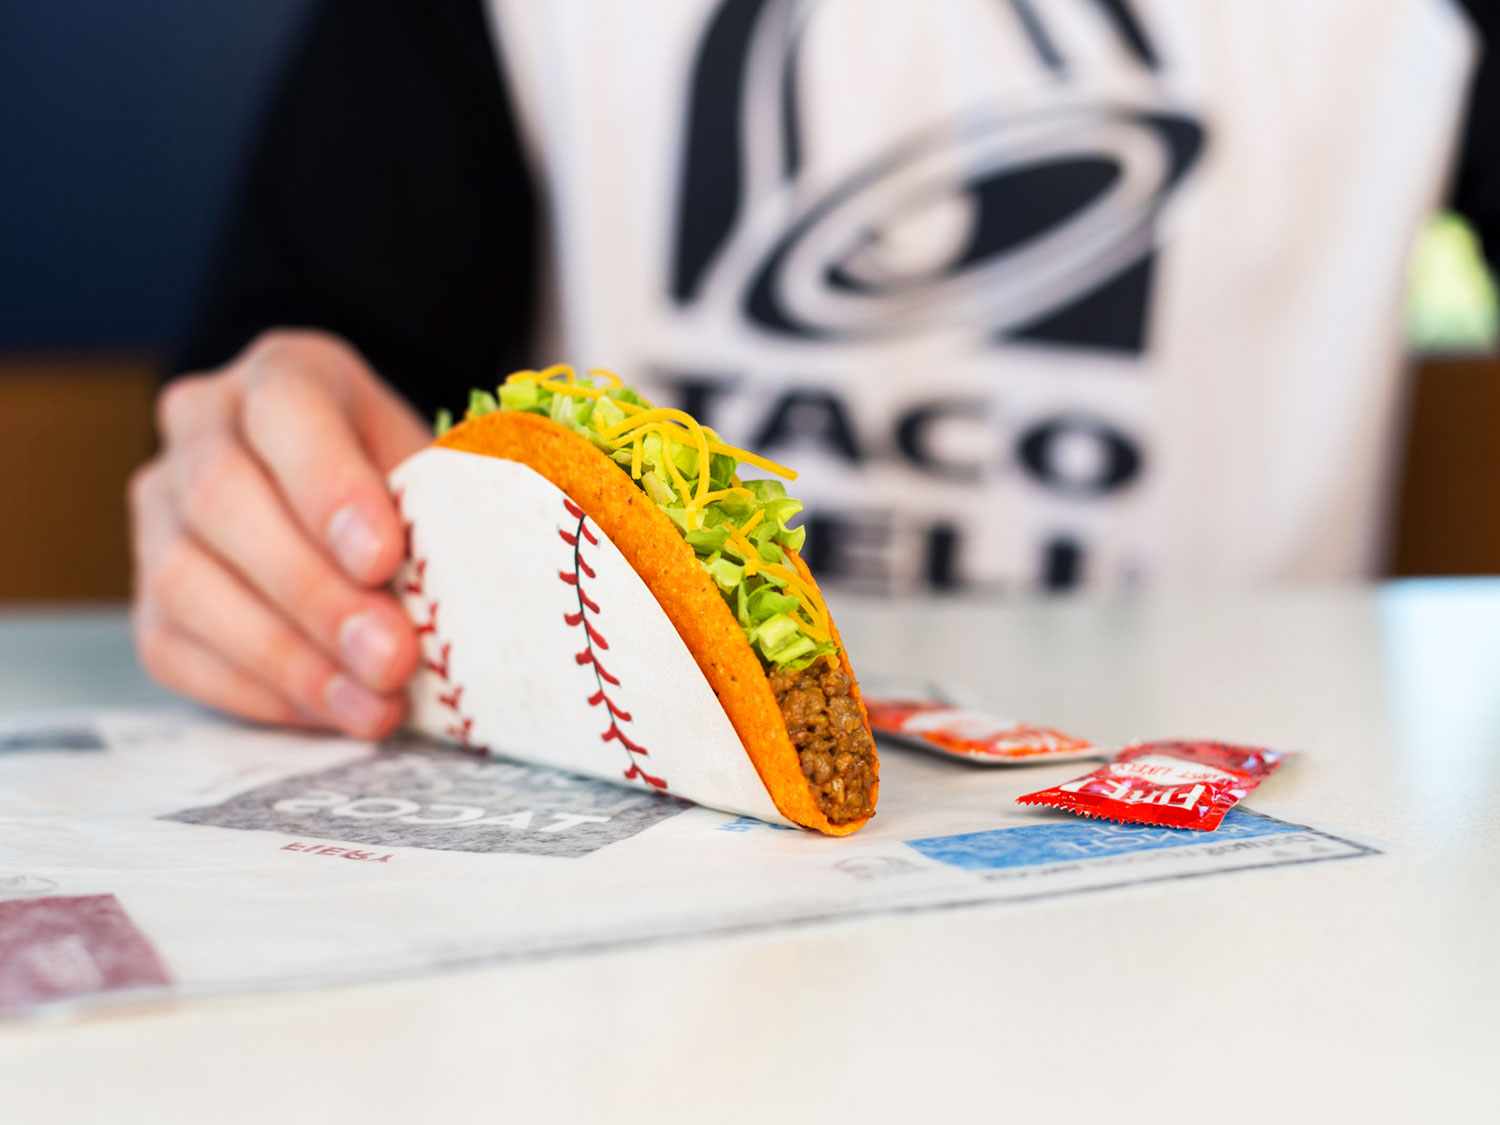 taco bell and mlb steal a base steal a taco